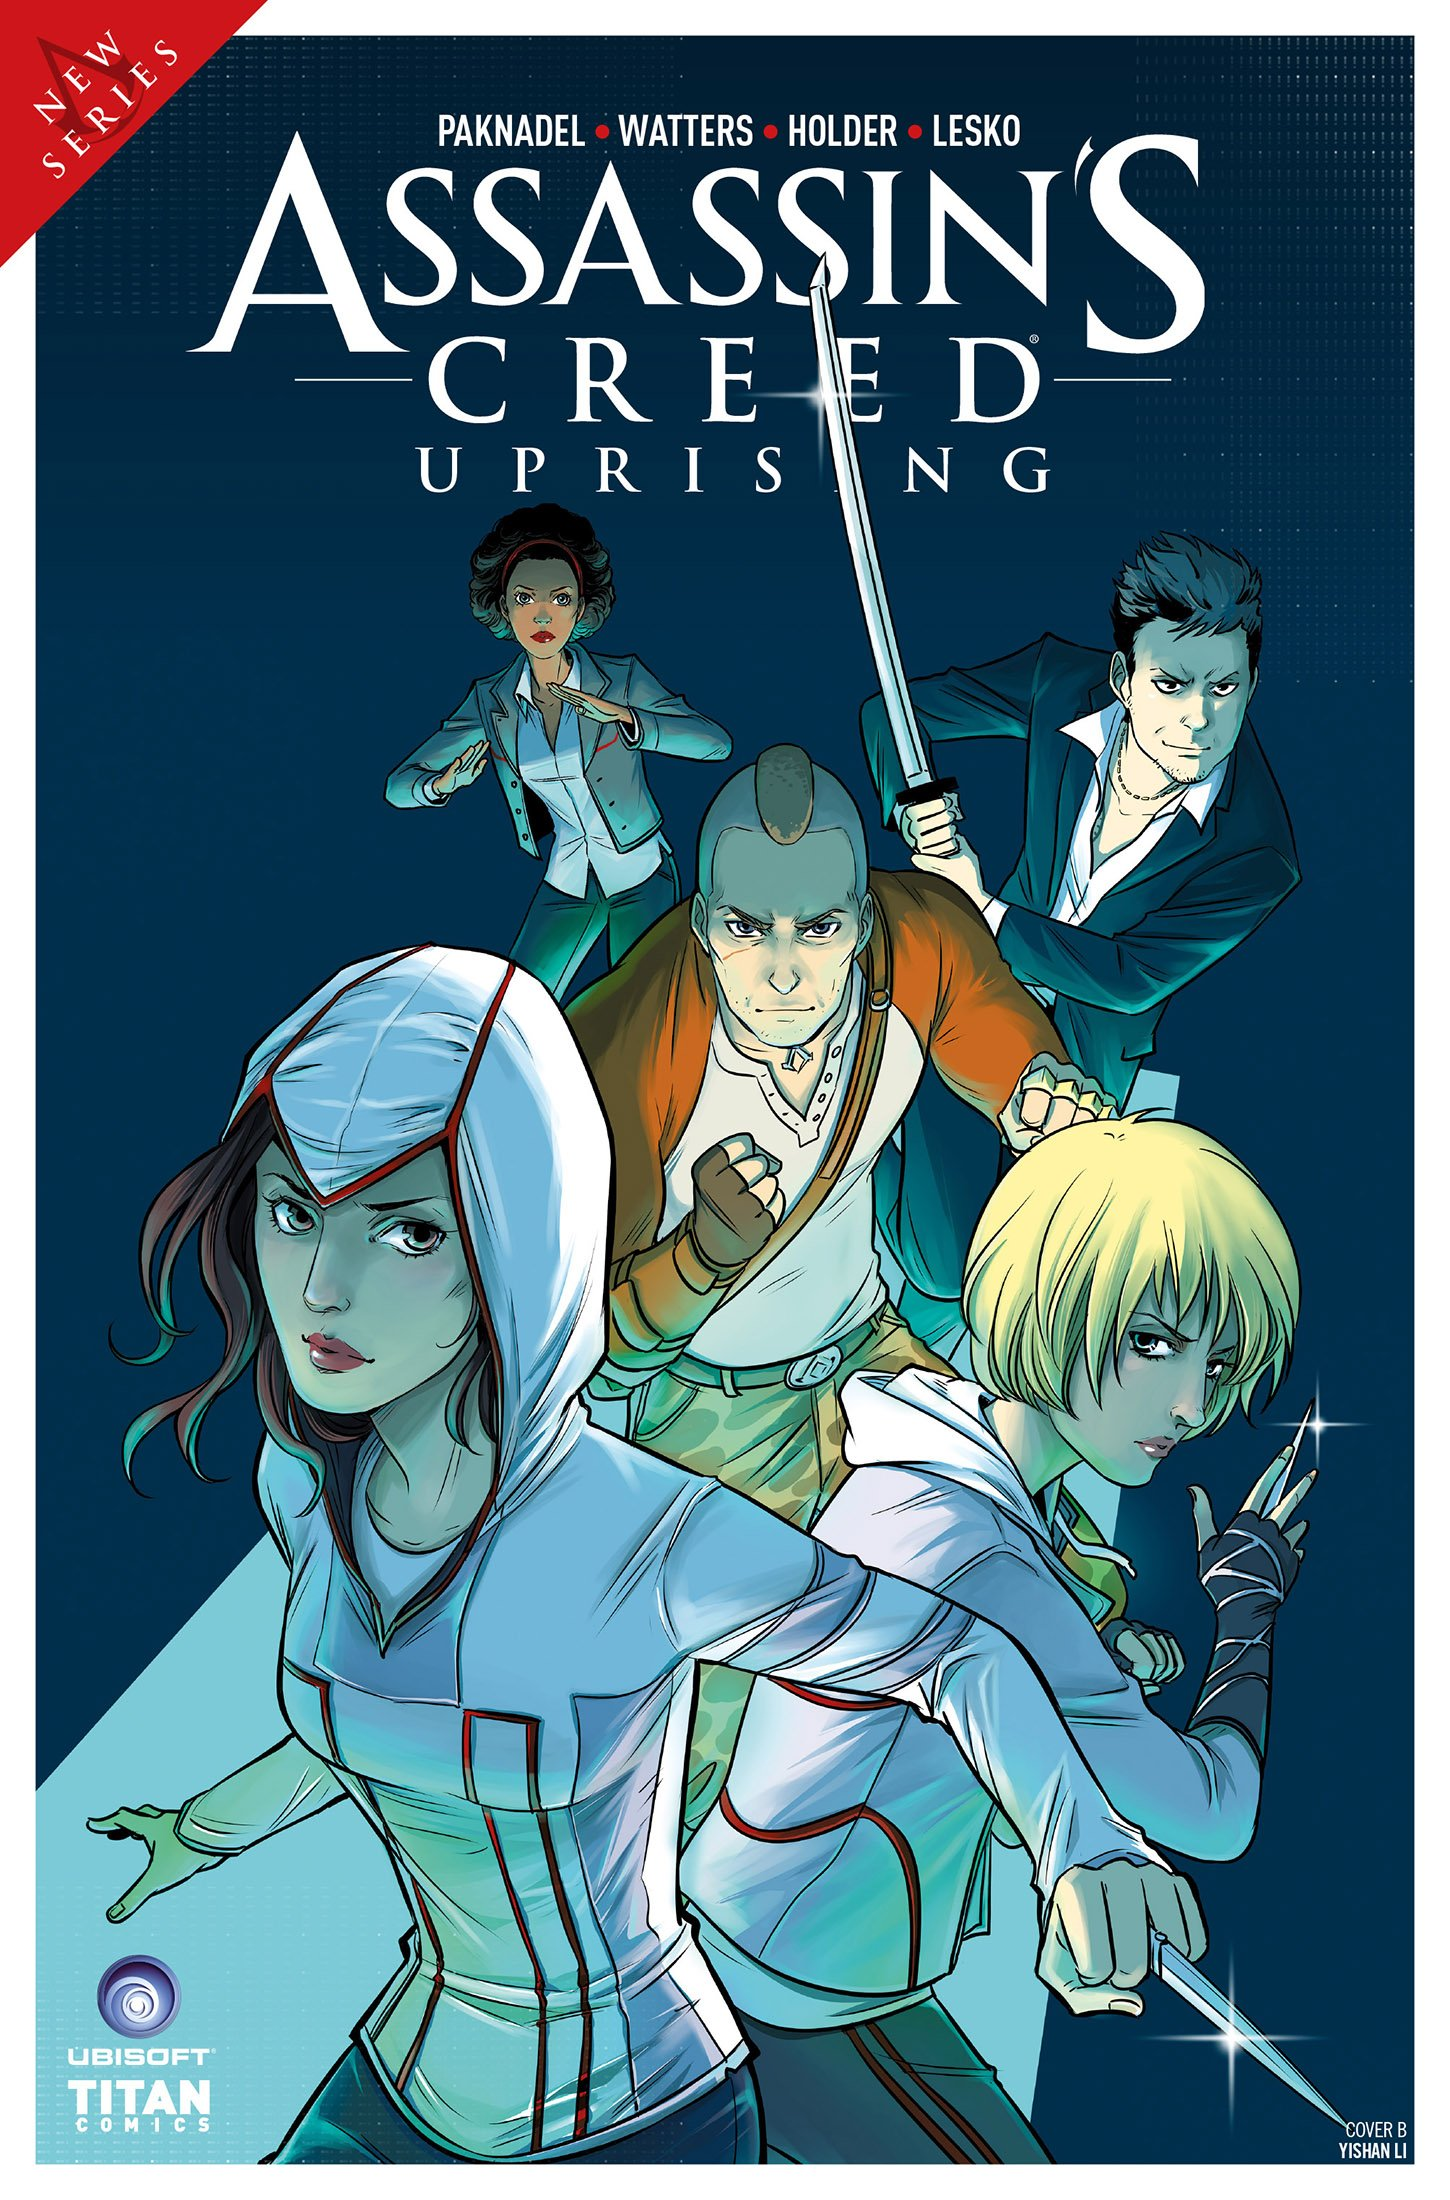 Assassin's Creed - Uprising 04 (June 2017) (cover b)